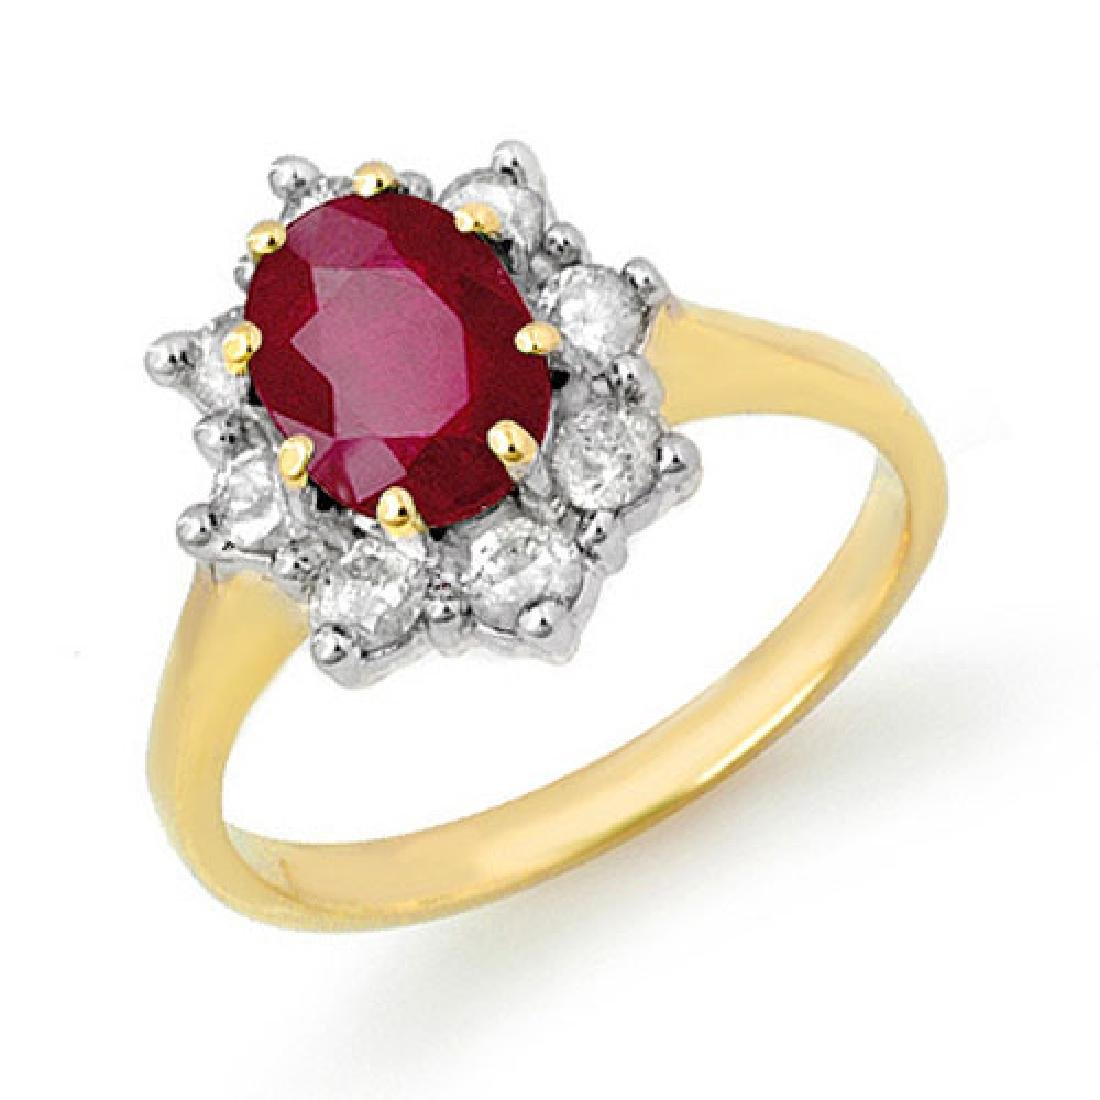 2.35 CTW Ruby & Diamond Ring 10K Yellow Gold